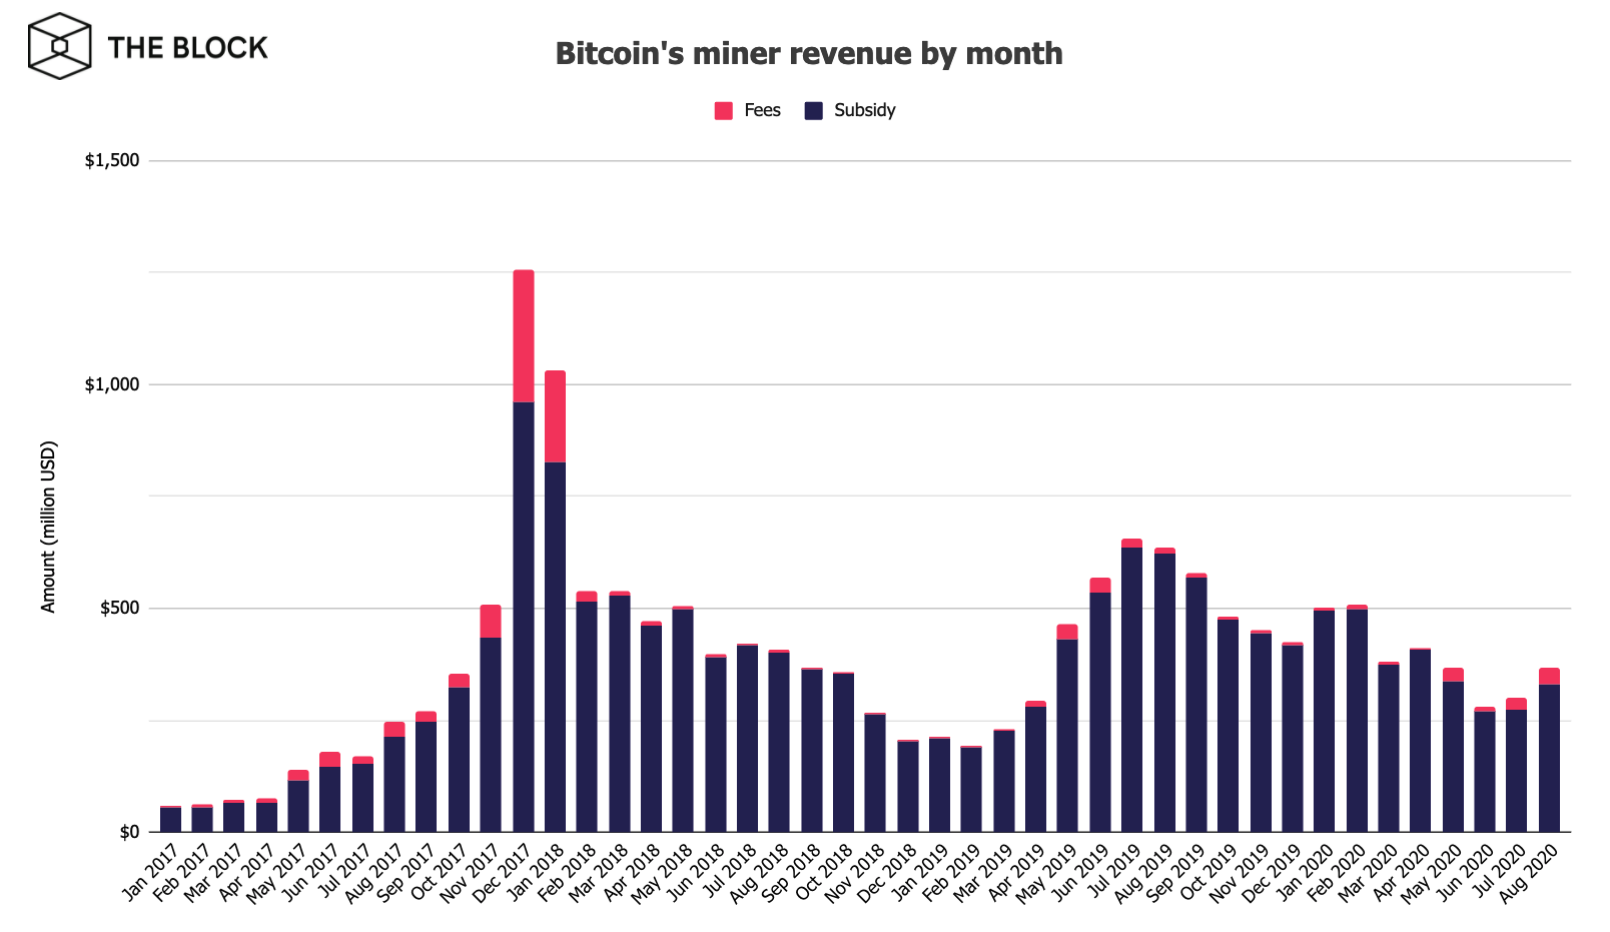 https://www.tbstat.com/wp/uploads/2020/09/Bitcoin-miner-revenue.png